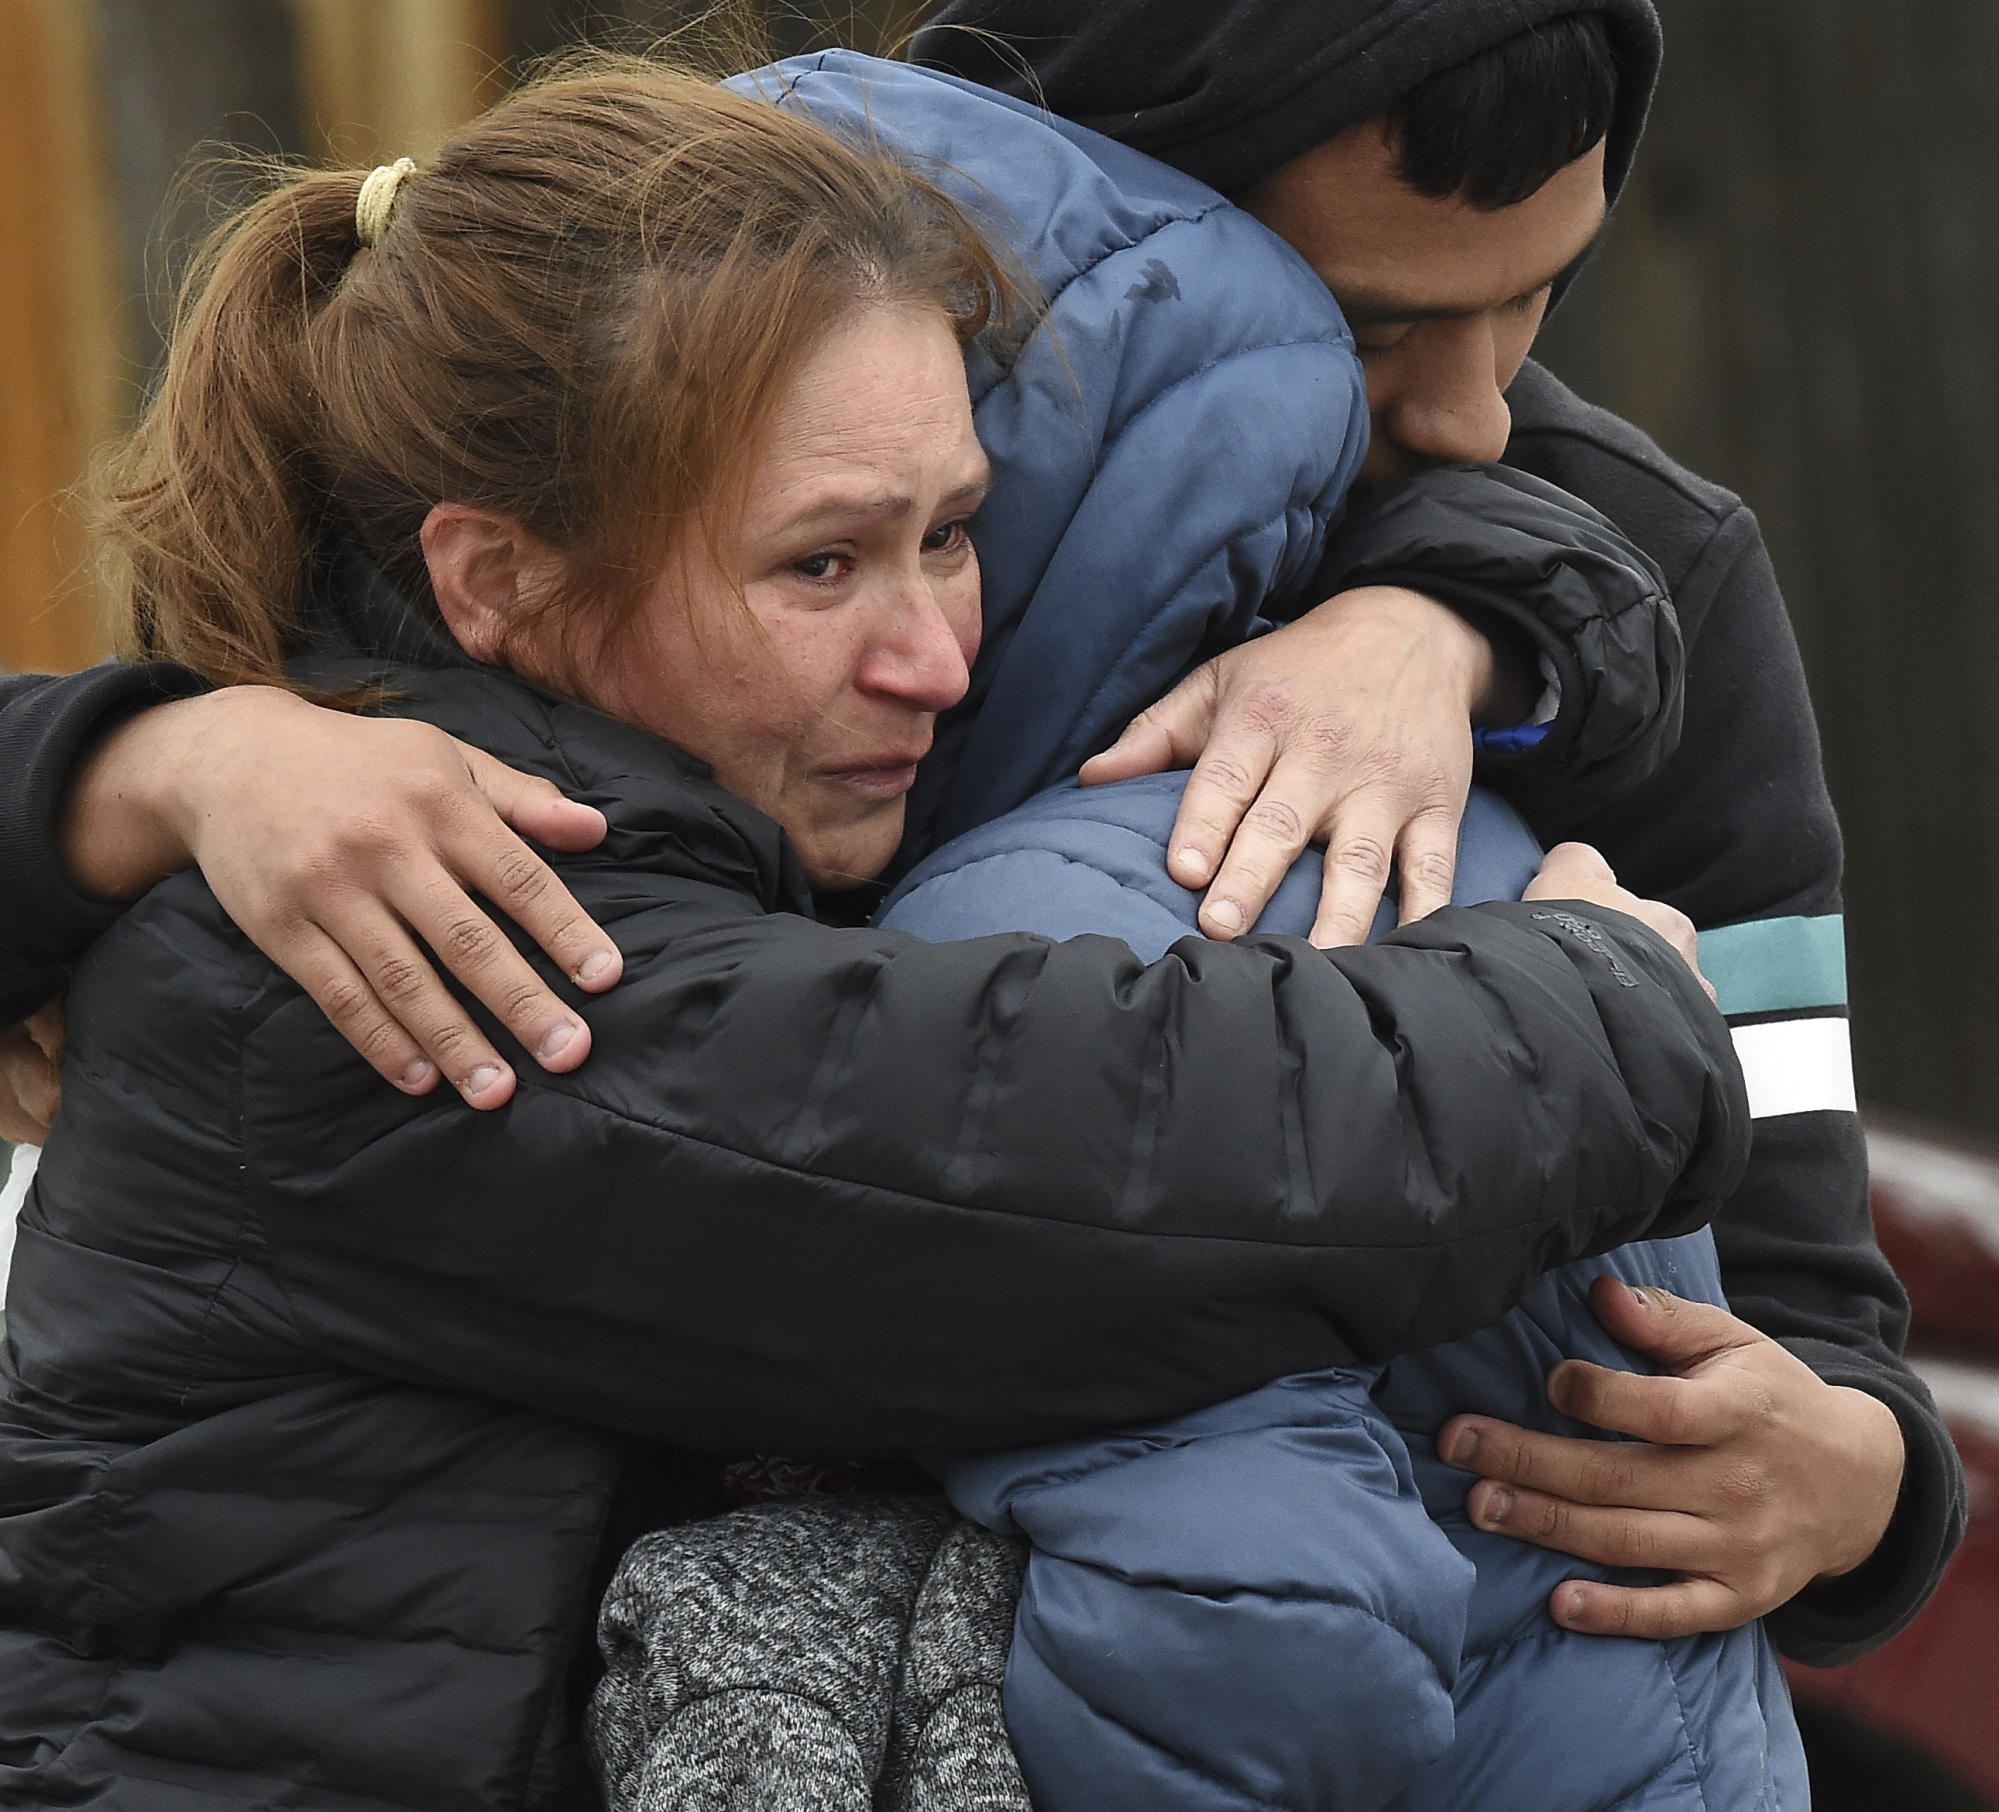 Children were spared death but traumatized in Colorado massacre killing 7 thumbnail